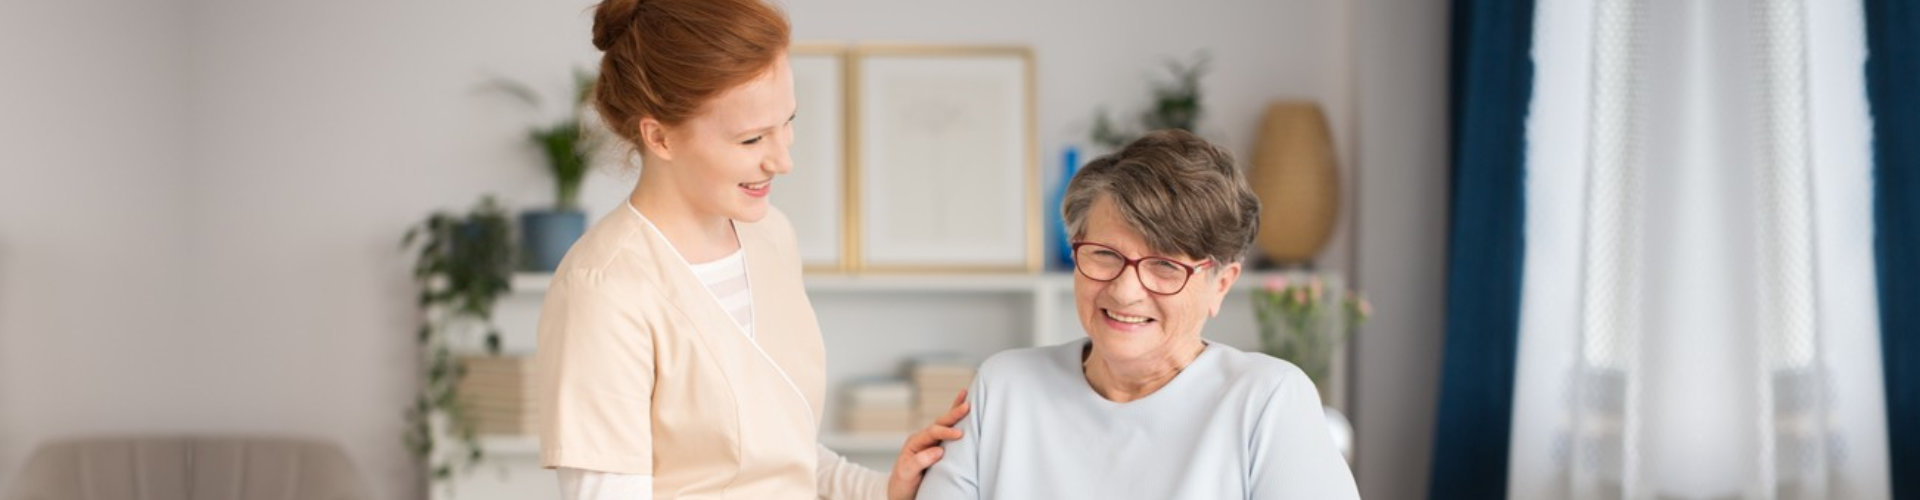 famale caregiver and senior woman are smiling